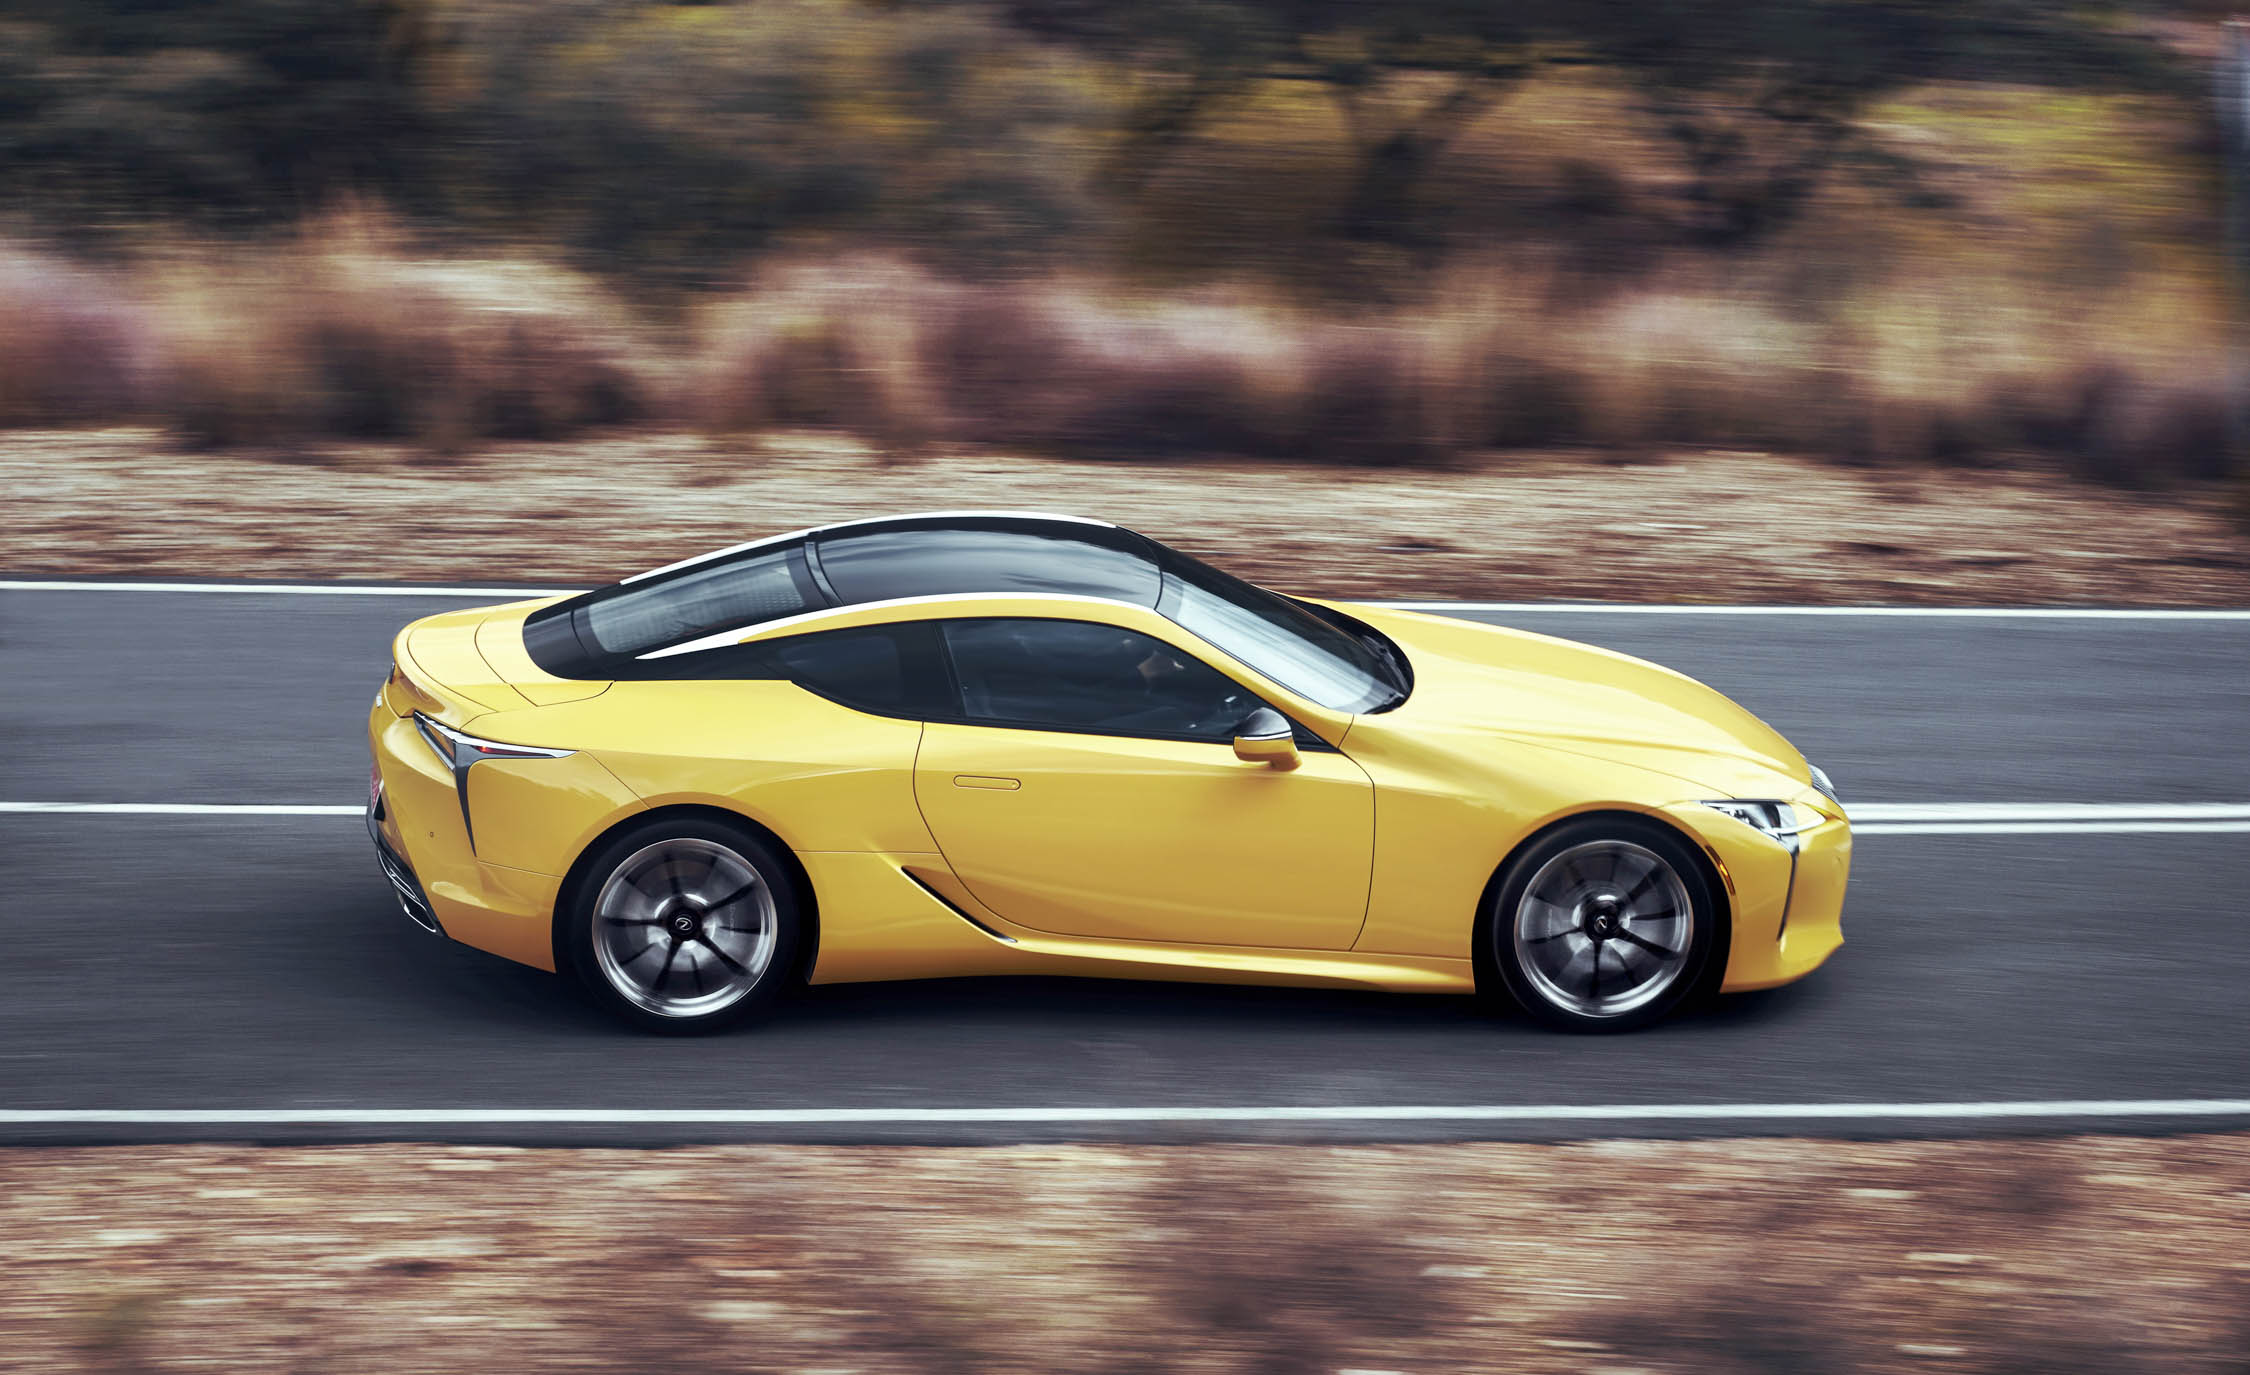 New 2018 Lexus Lc500 Side View (Photo 83 of 84)